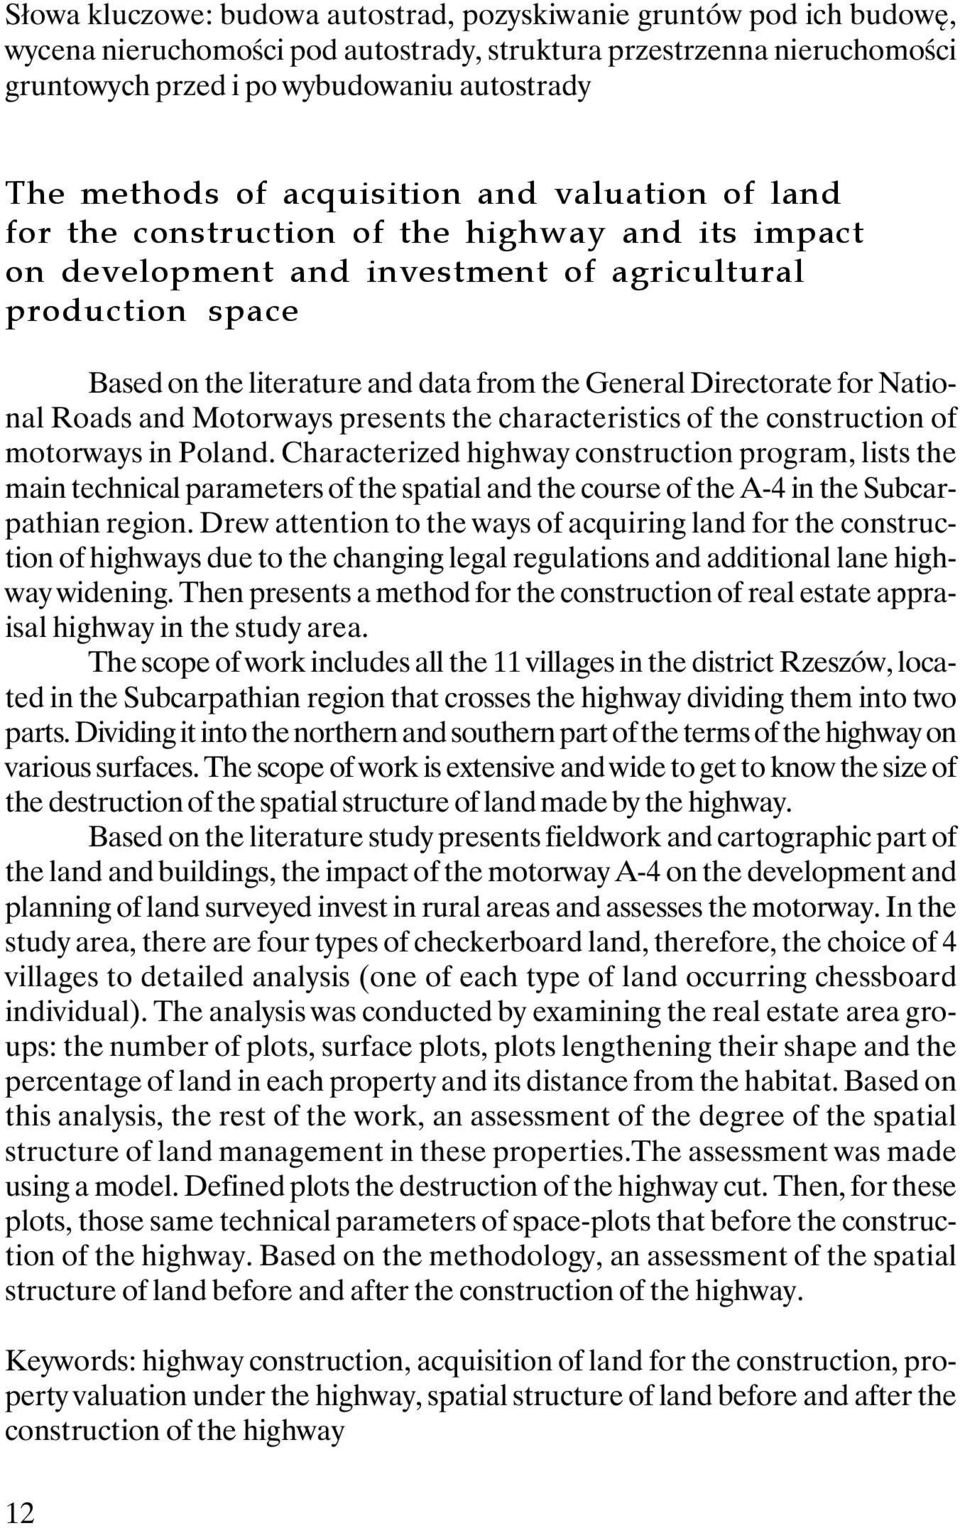 the General Directorate for National Roads and Motorways presents the characteristics of the construction of motorways in Poland.